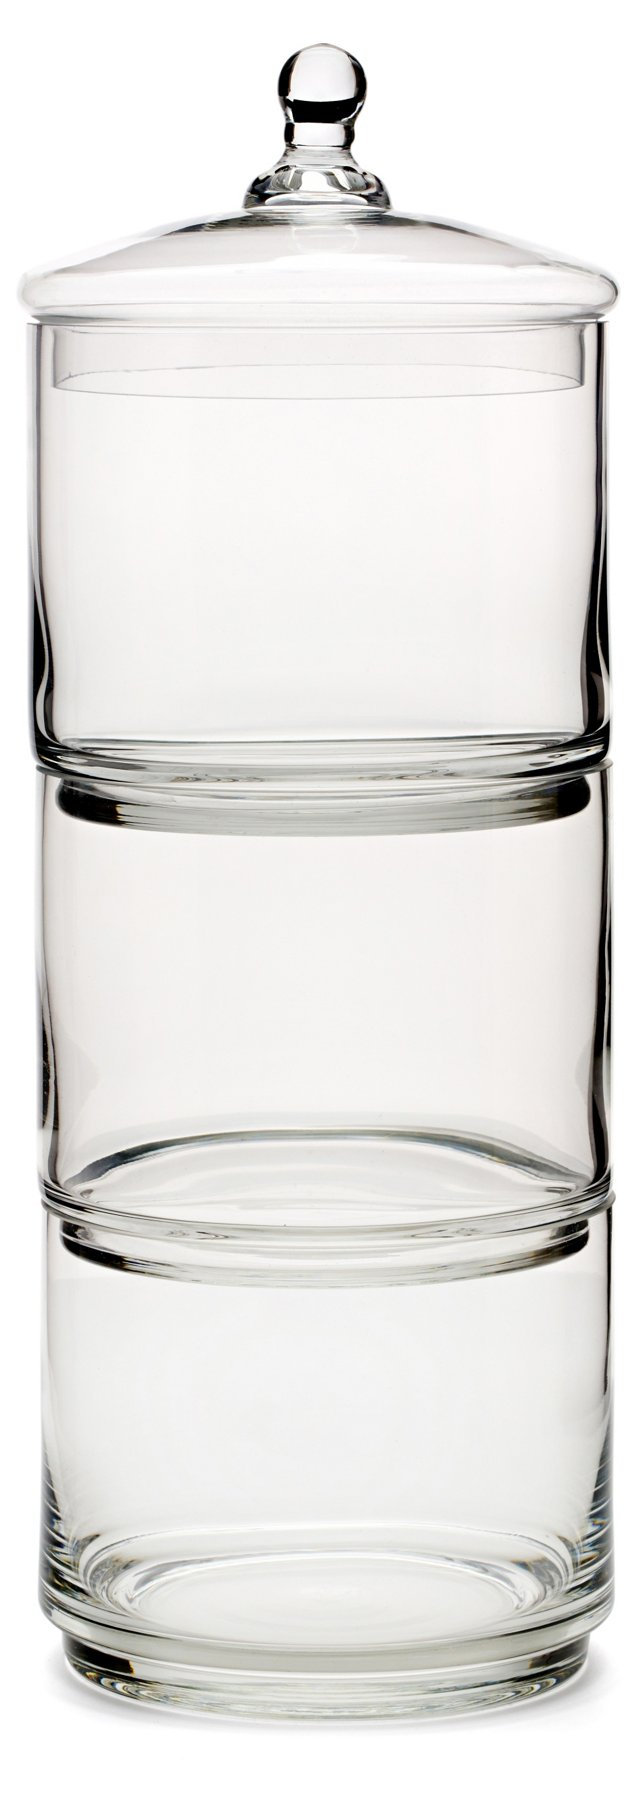 "20"" 3-Tier Glass Canister"